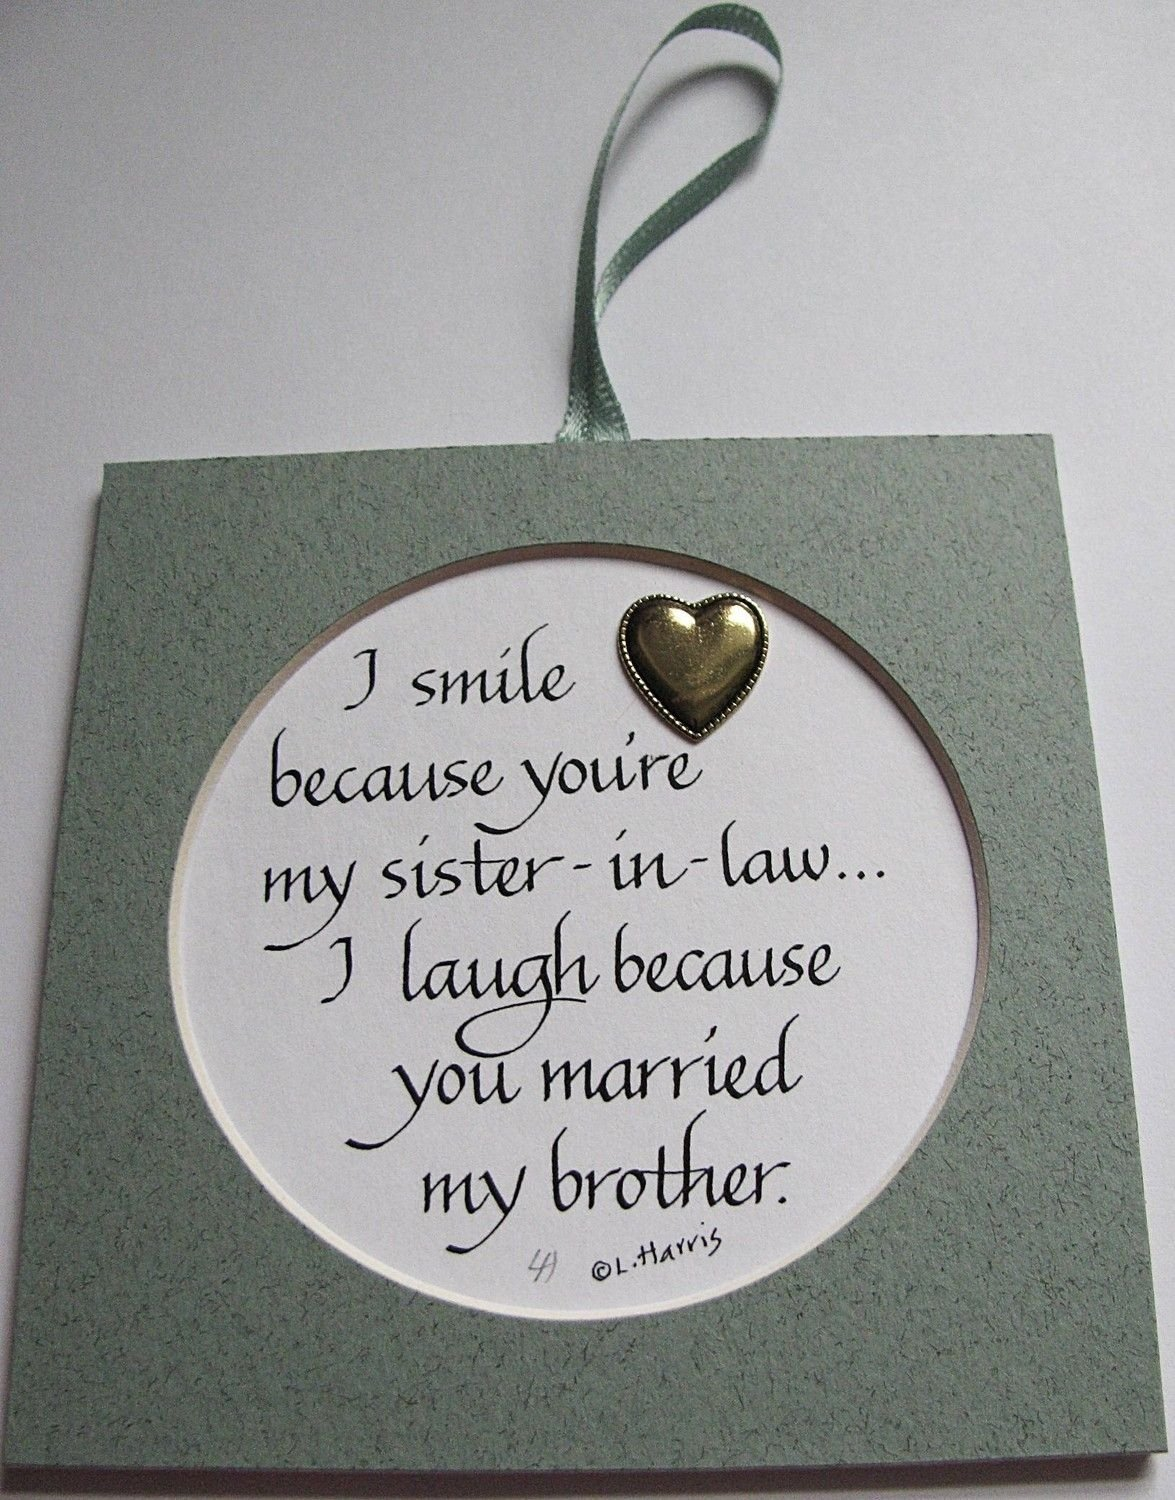 10 Most Popular Gift Ideas For Sister From Brother i smile because youre my sister in law 8 00 via etsy funny 4